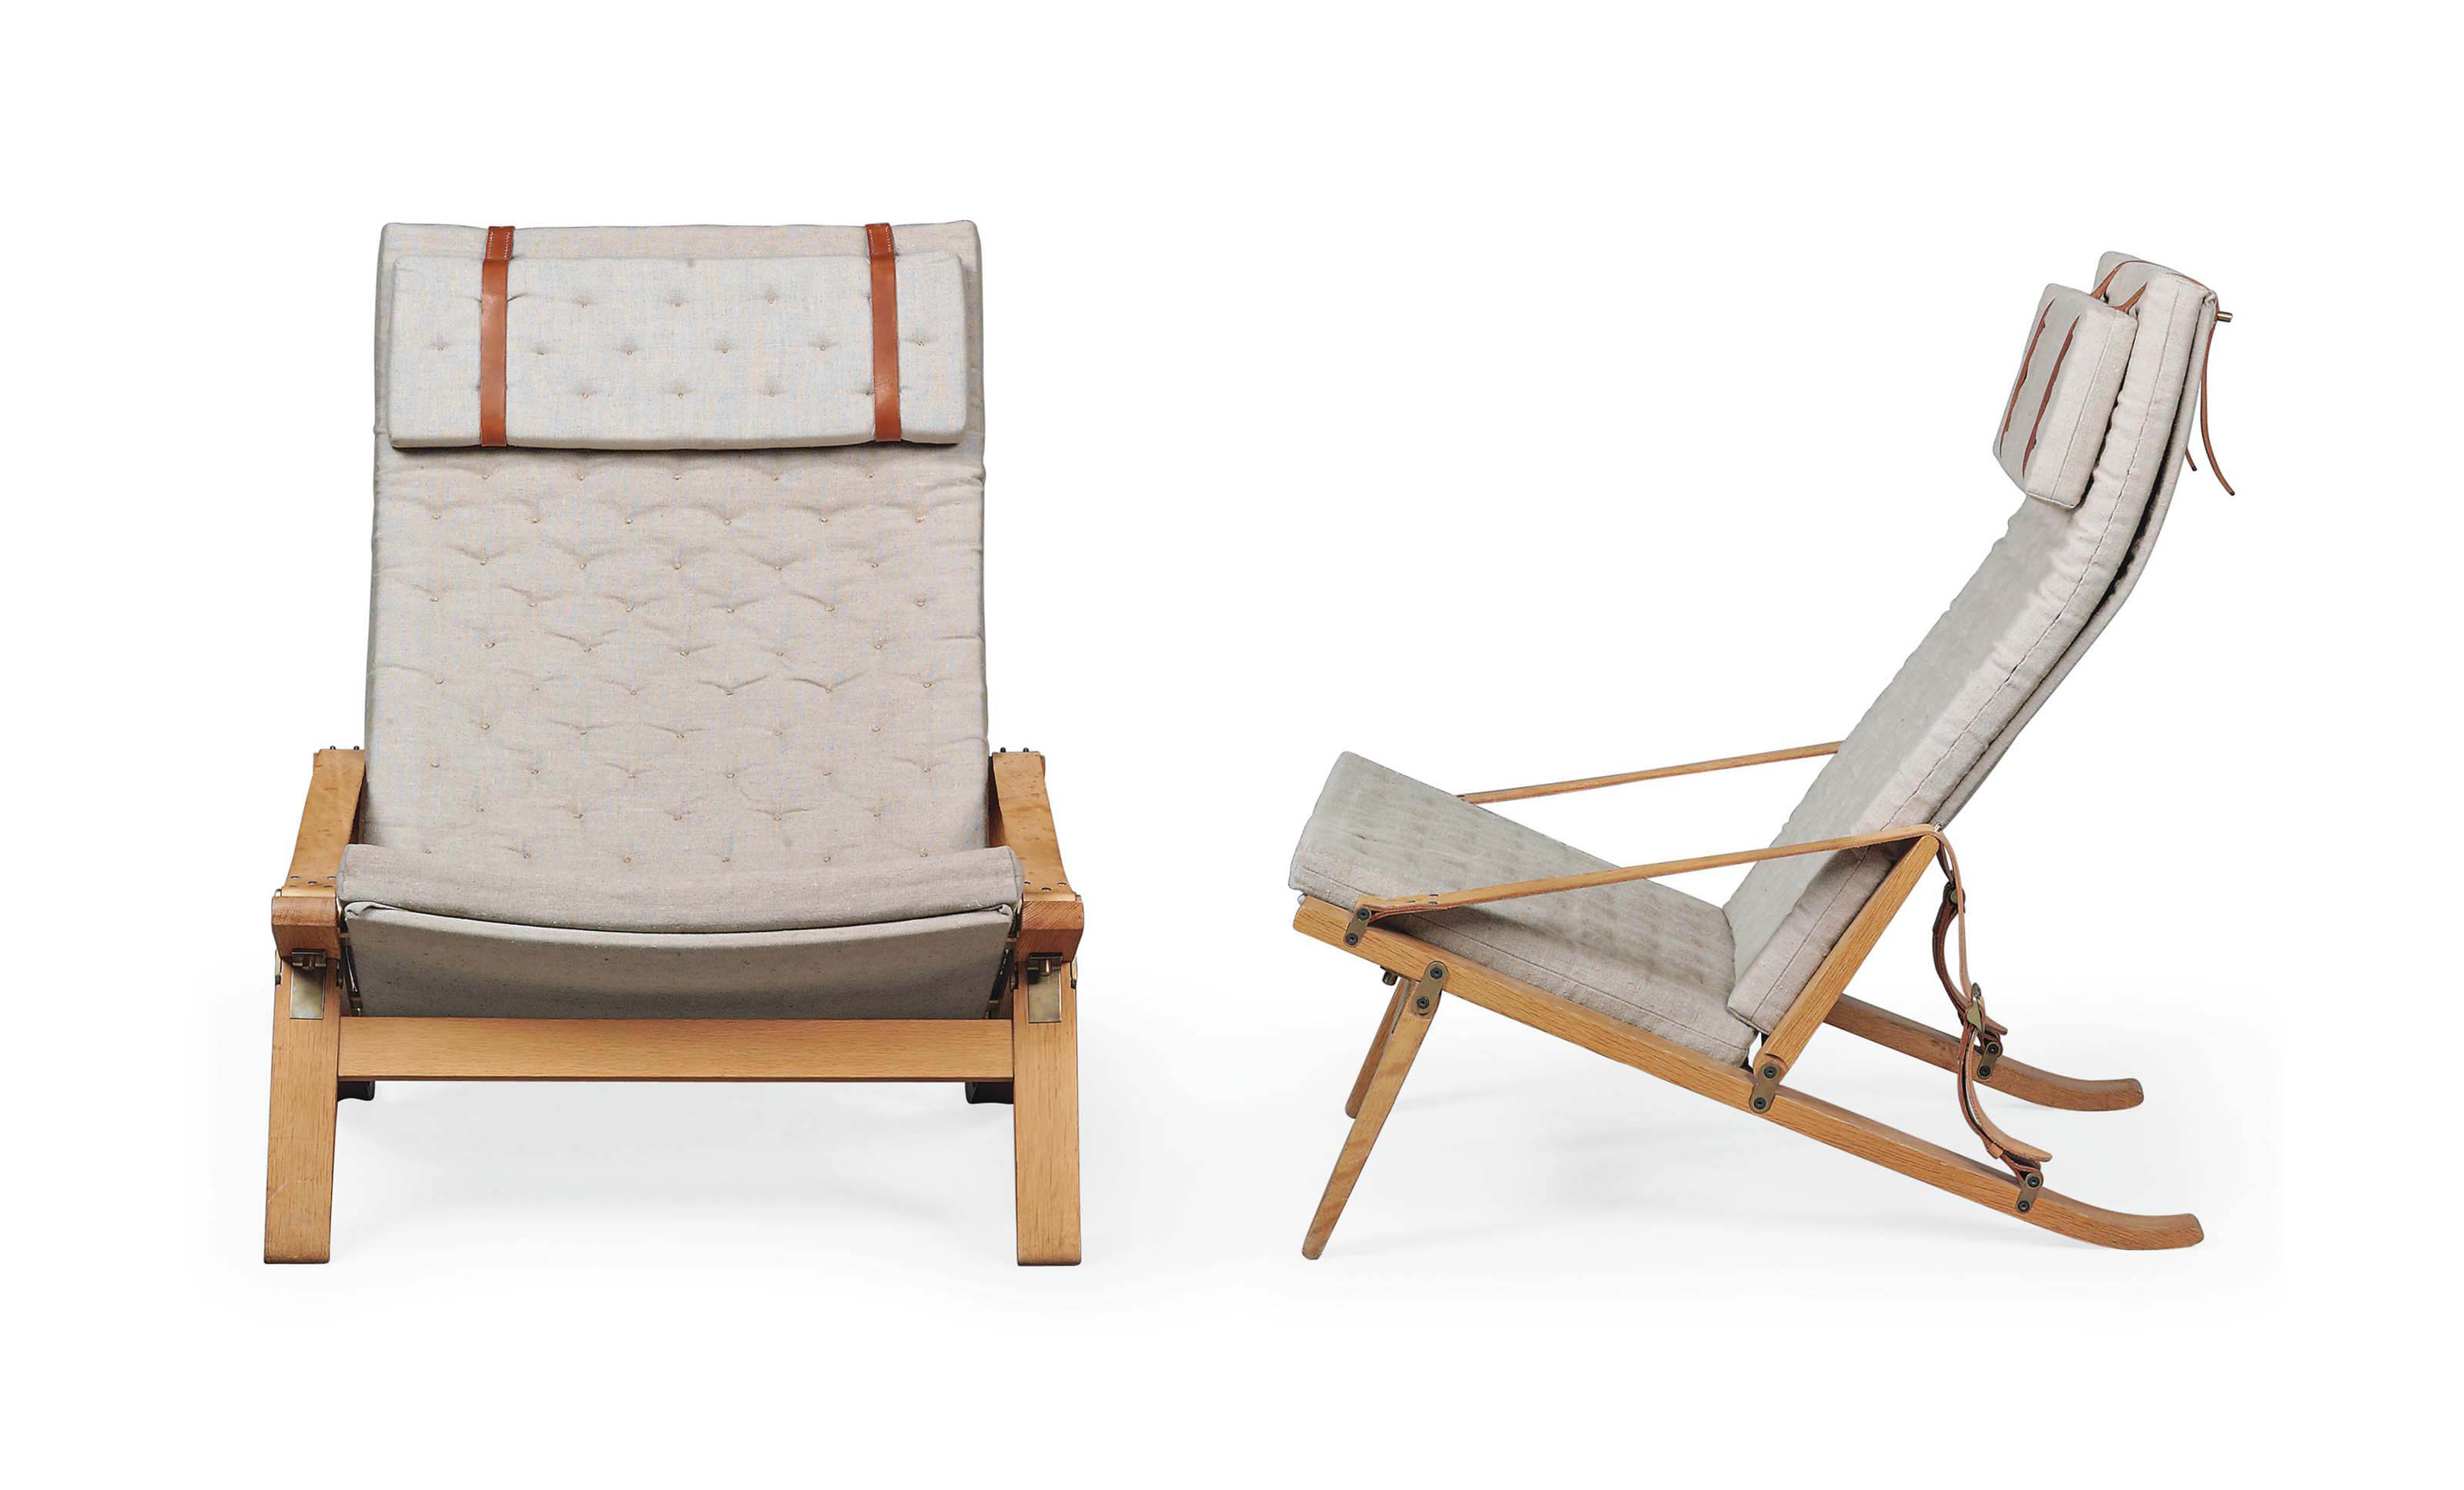 A PAIR OF PREBEN FABRICIUS (1931-1984) & JØRGEN KASTHOLM (1931-2007) P.B.10 HIGH-BACKED FOLDING LOUNGE CHAIRS